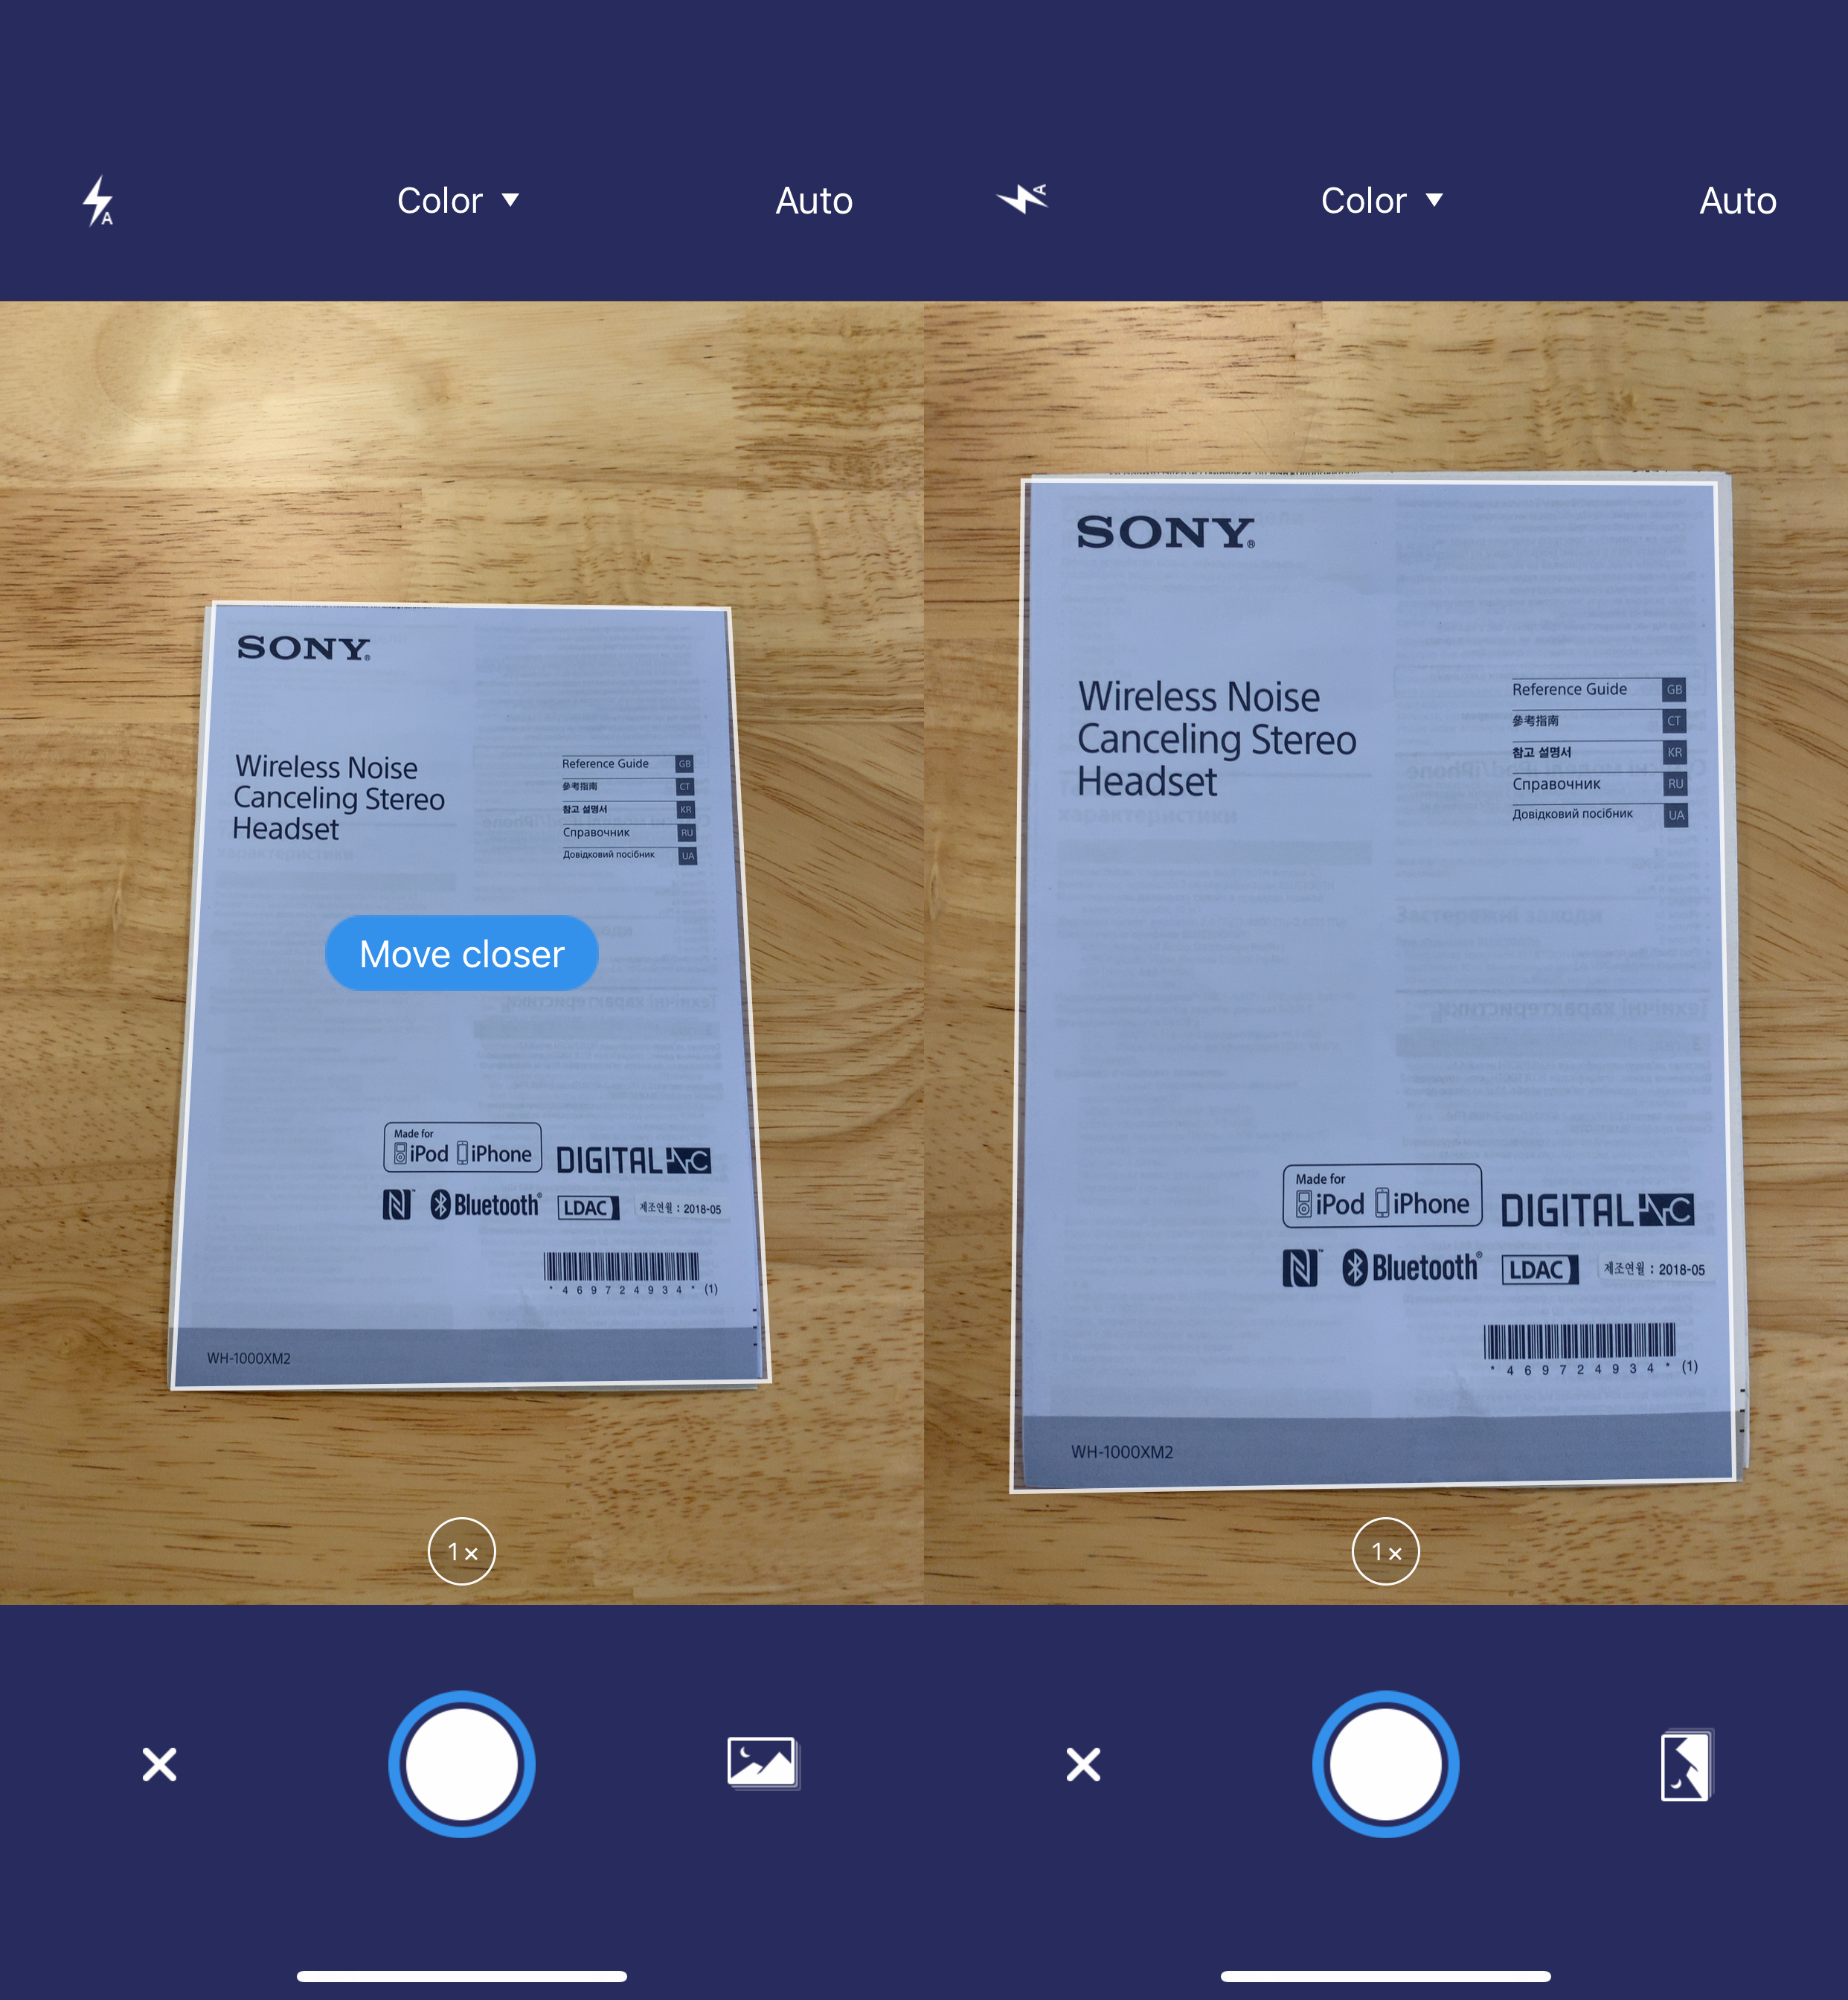 How to scan and store documents on iPhone or iPad